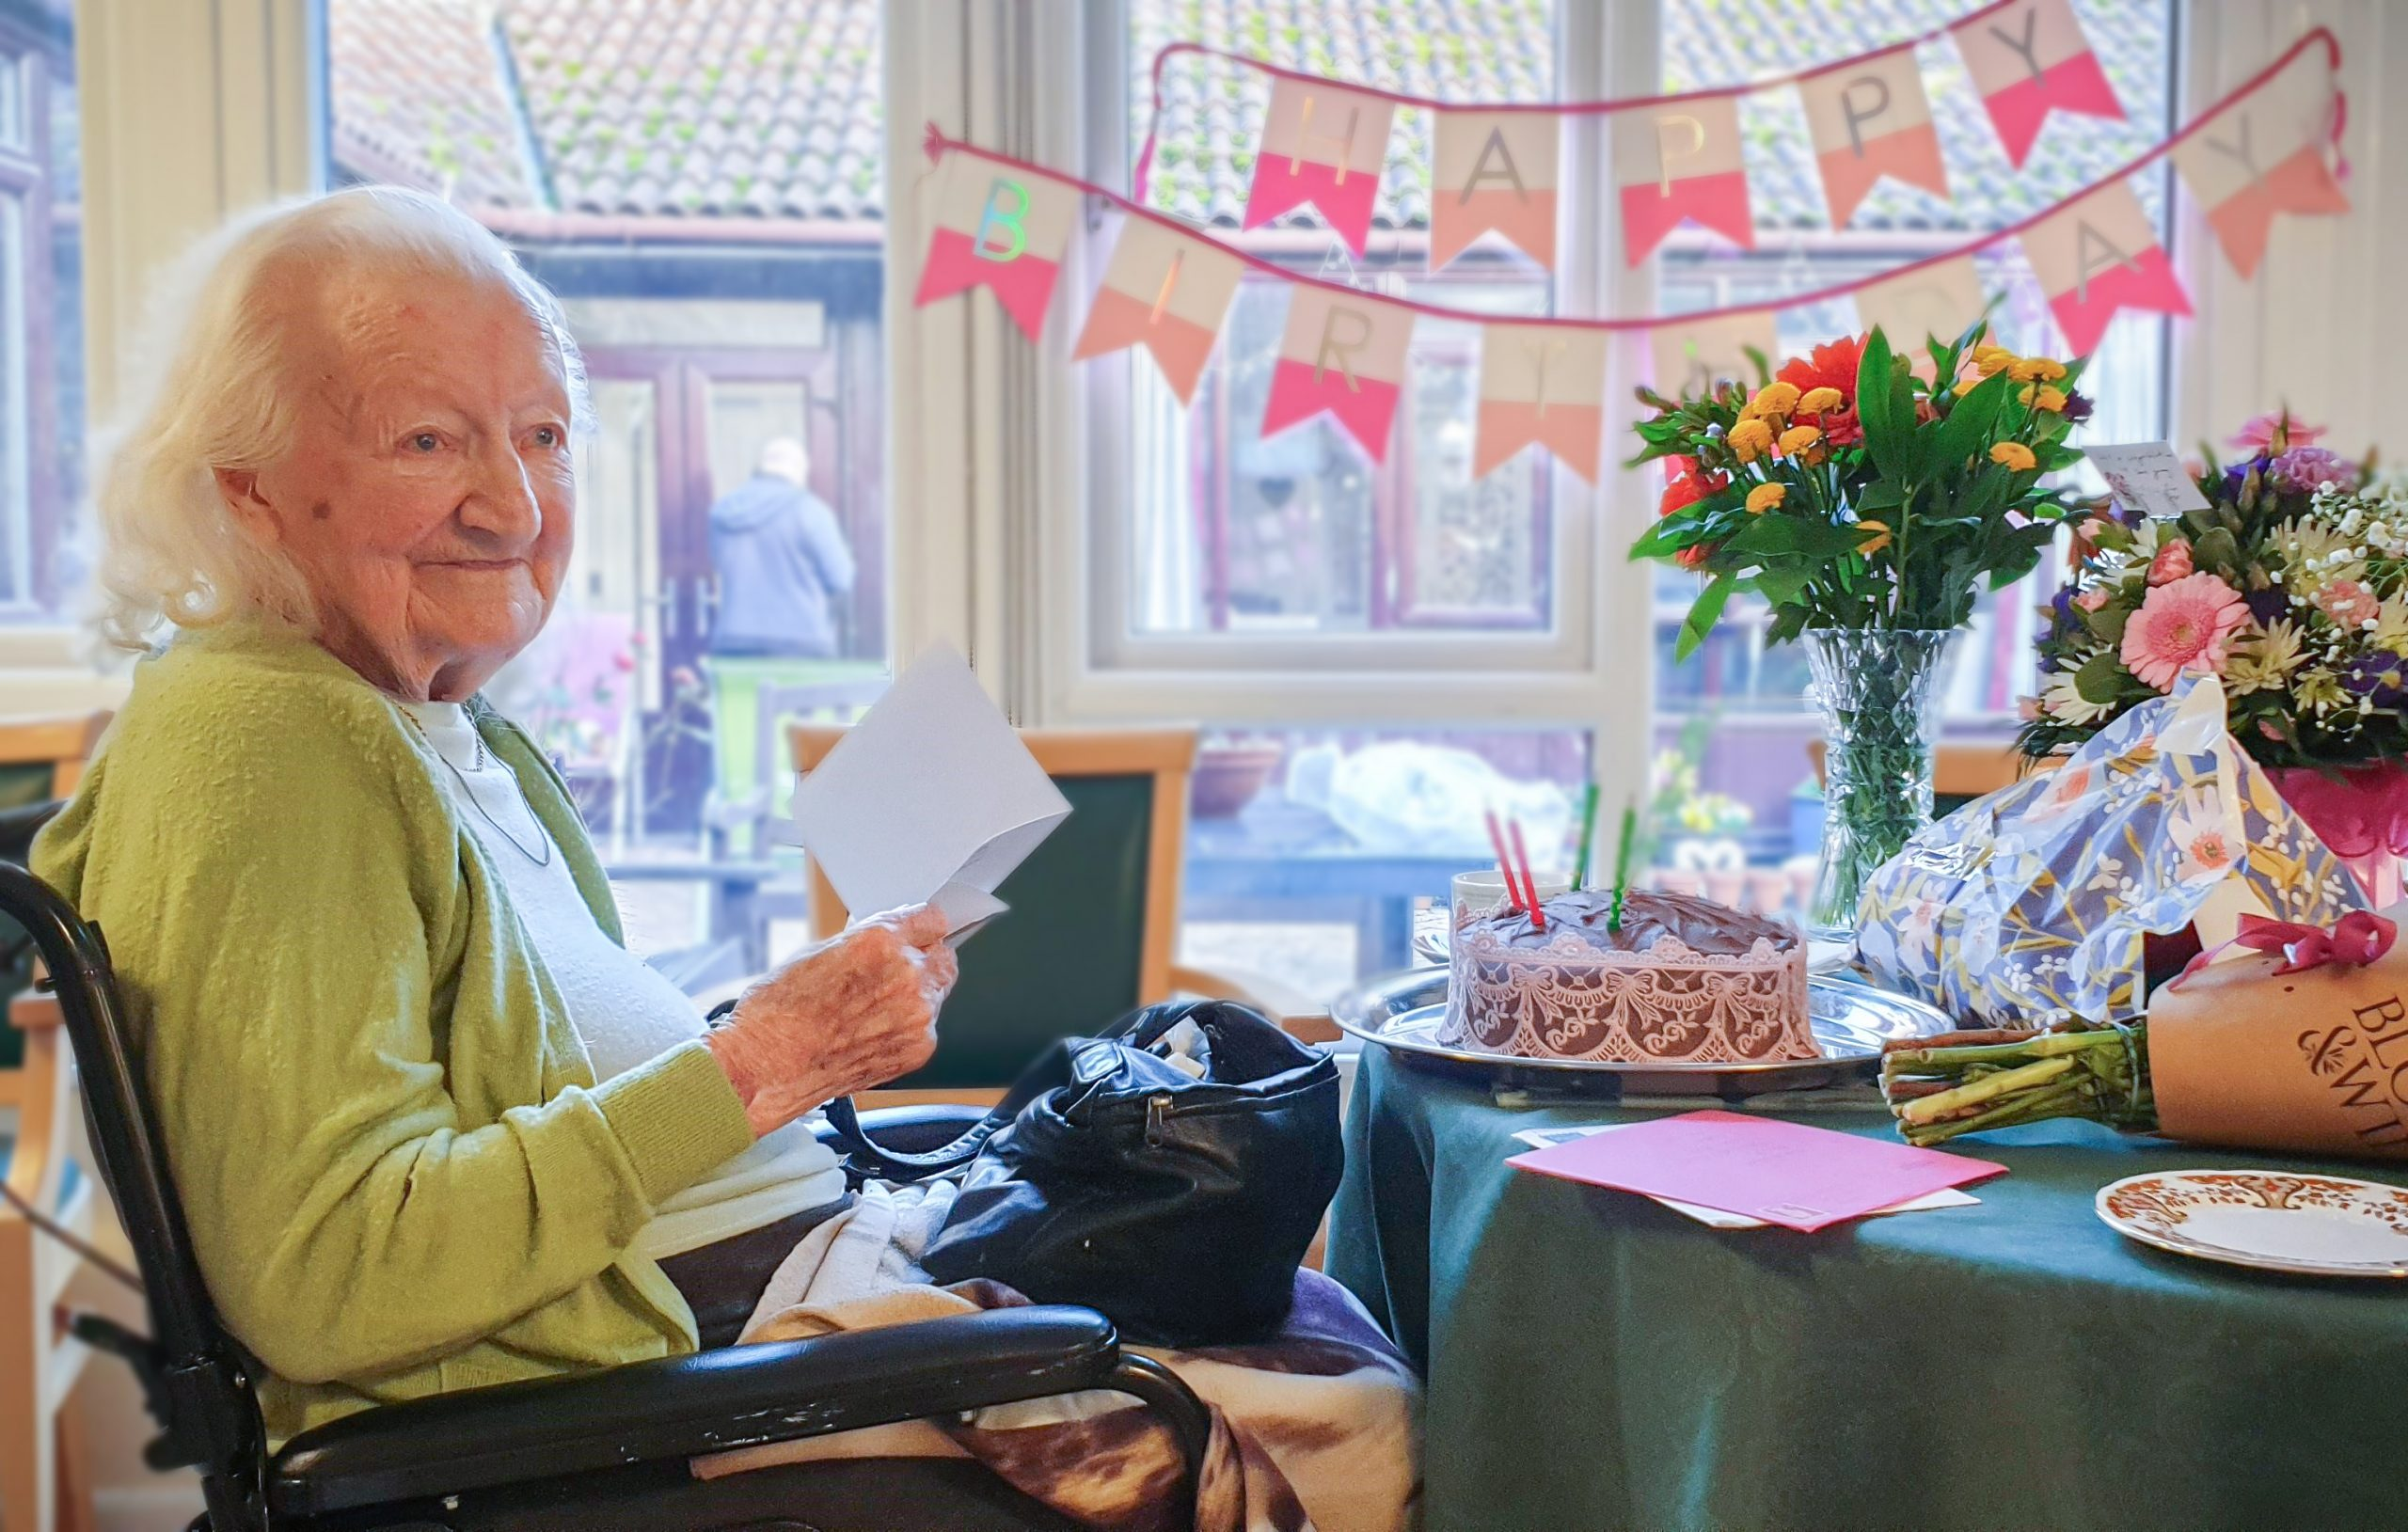 Essex resident Marjorie Wood celebrating her landmark birthday surrounded by cake and presents.